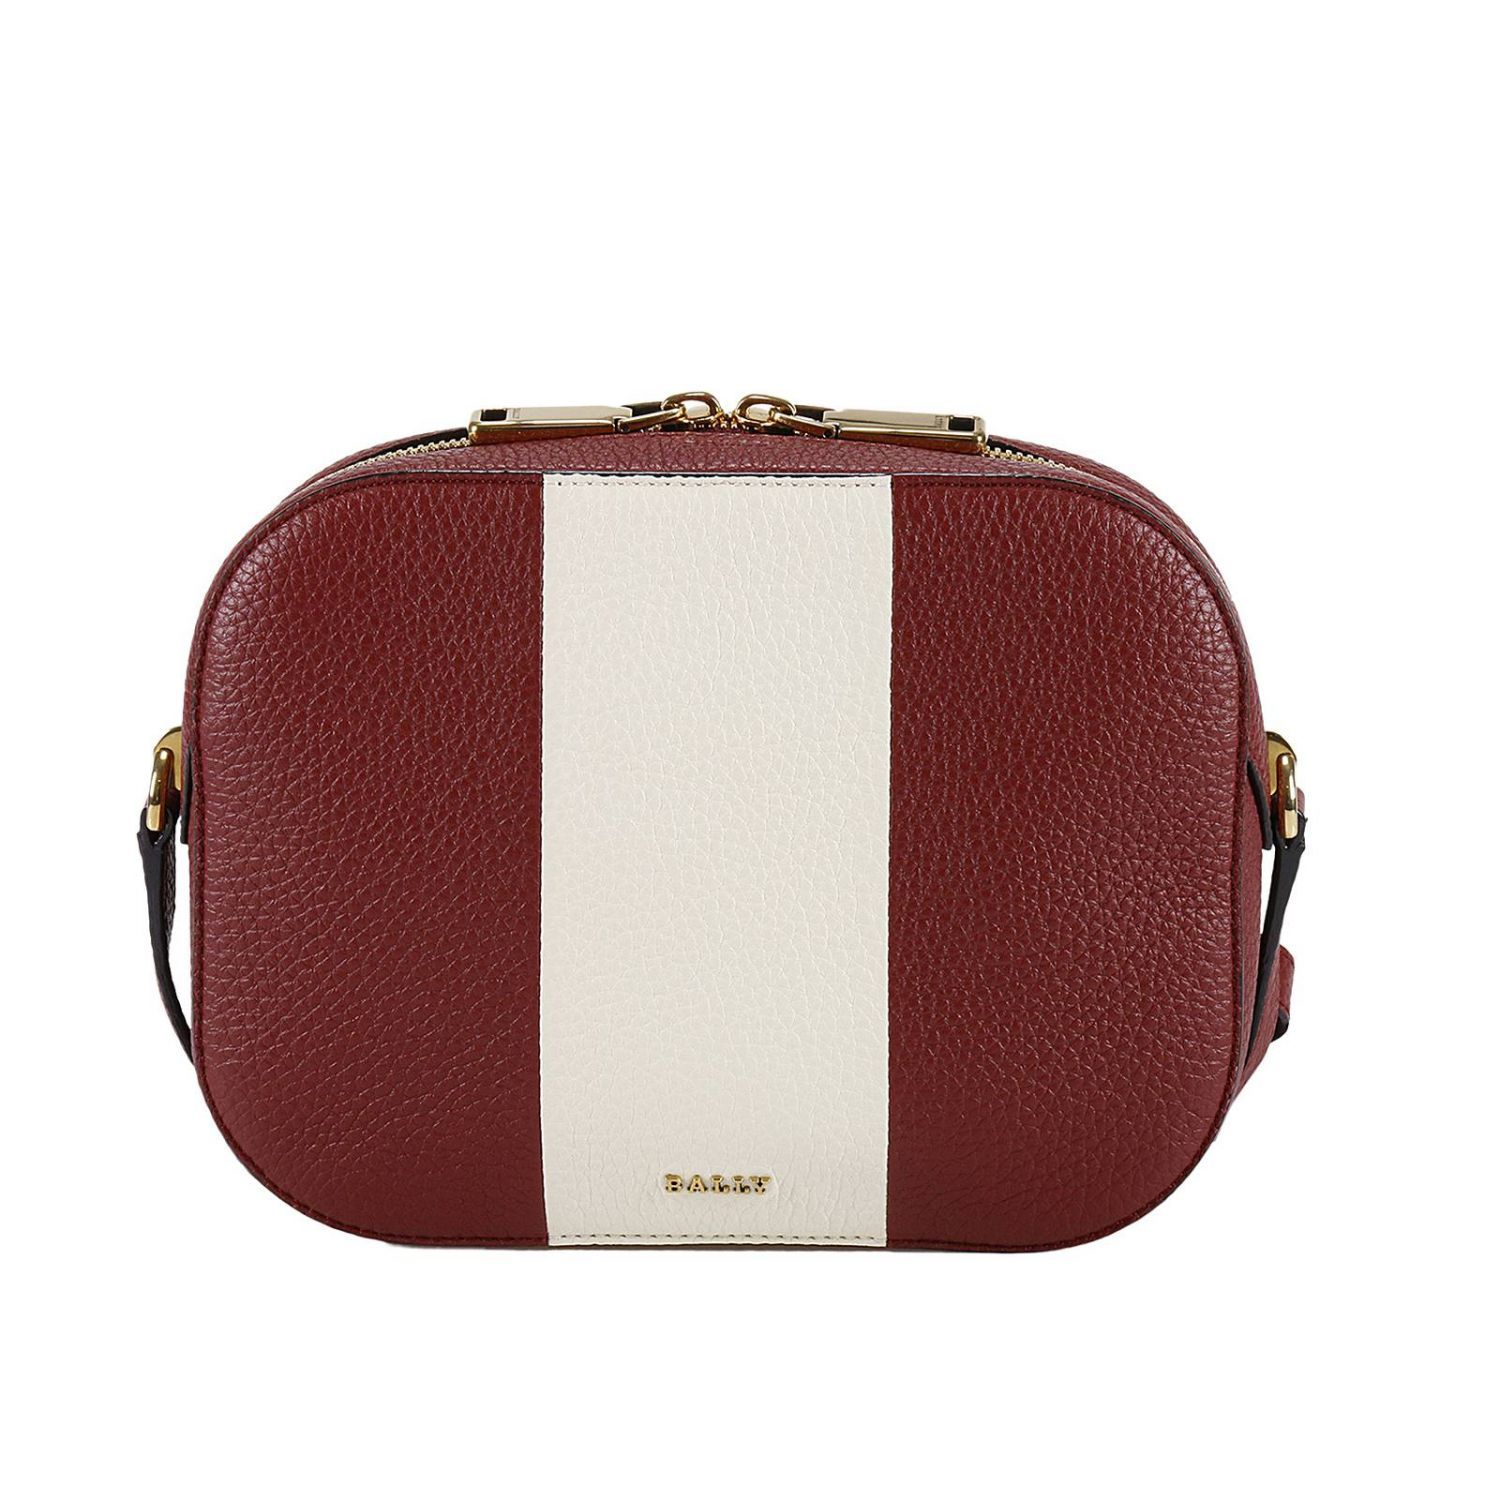 Mini Bag Clutch Women Bally